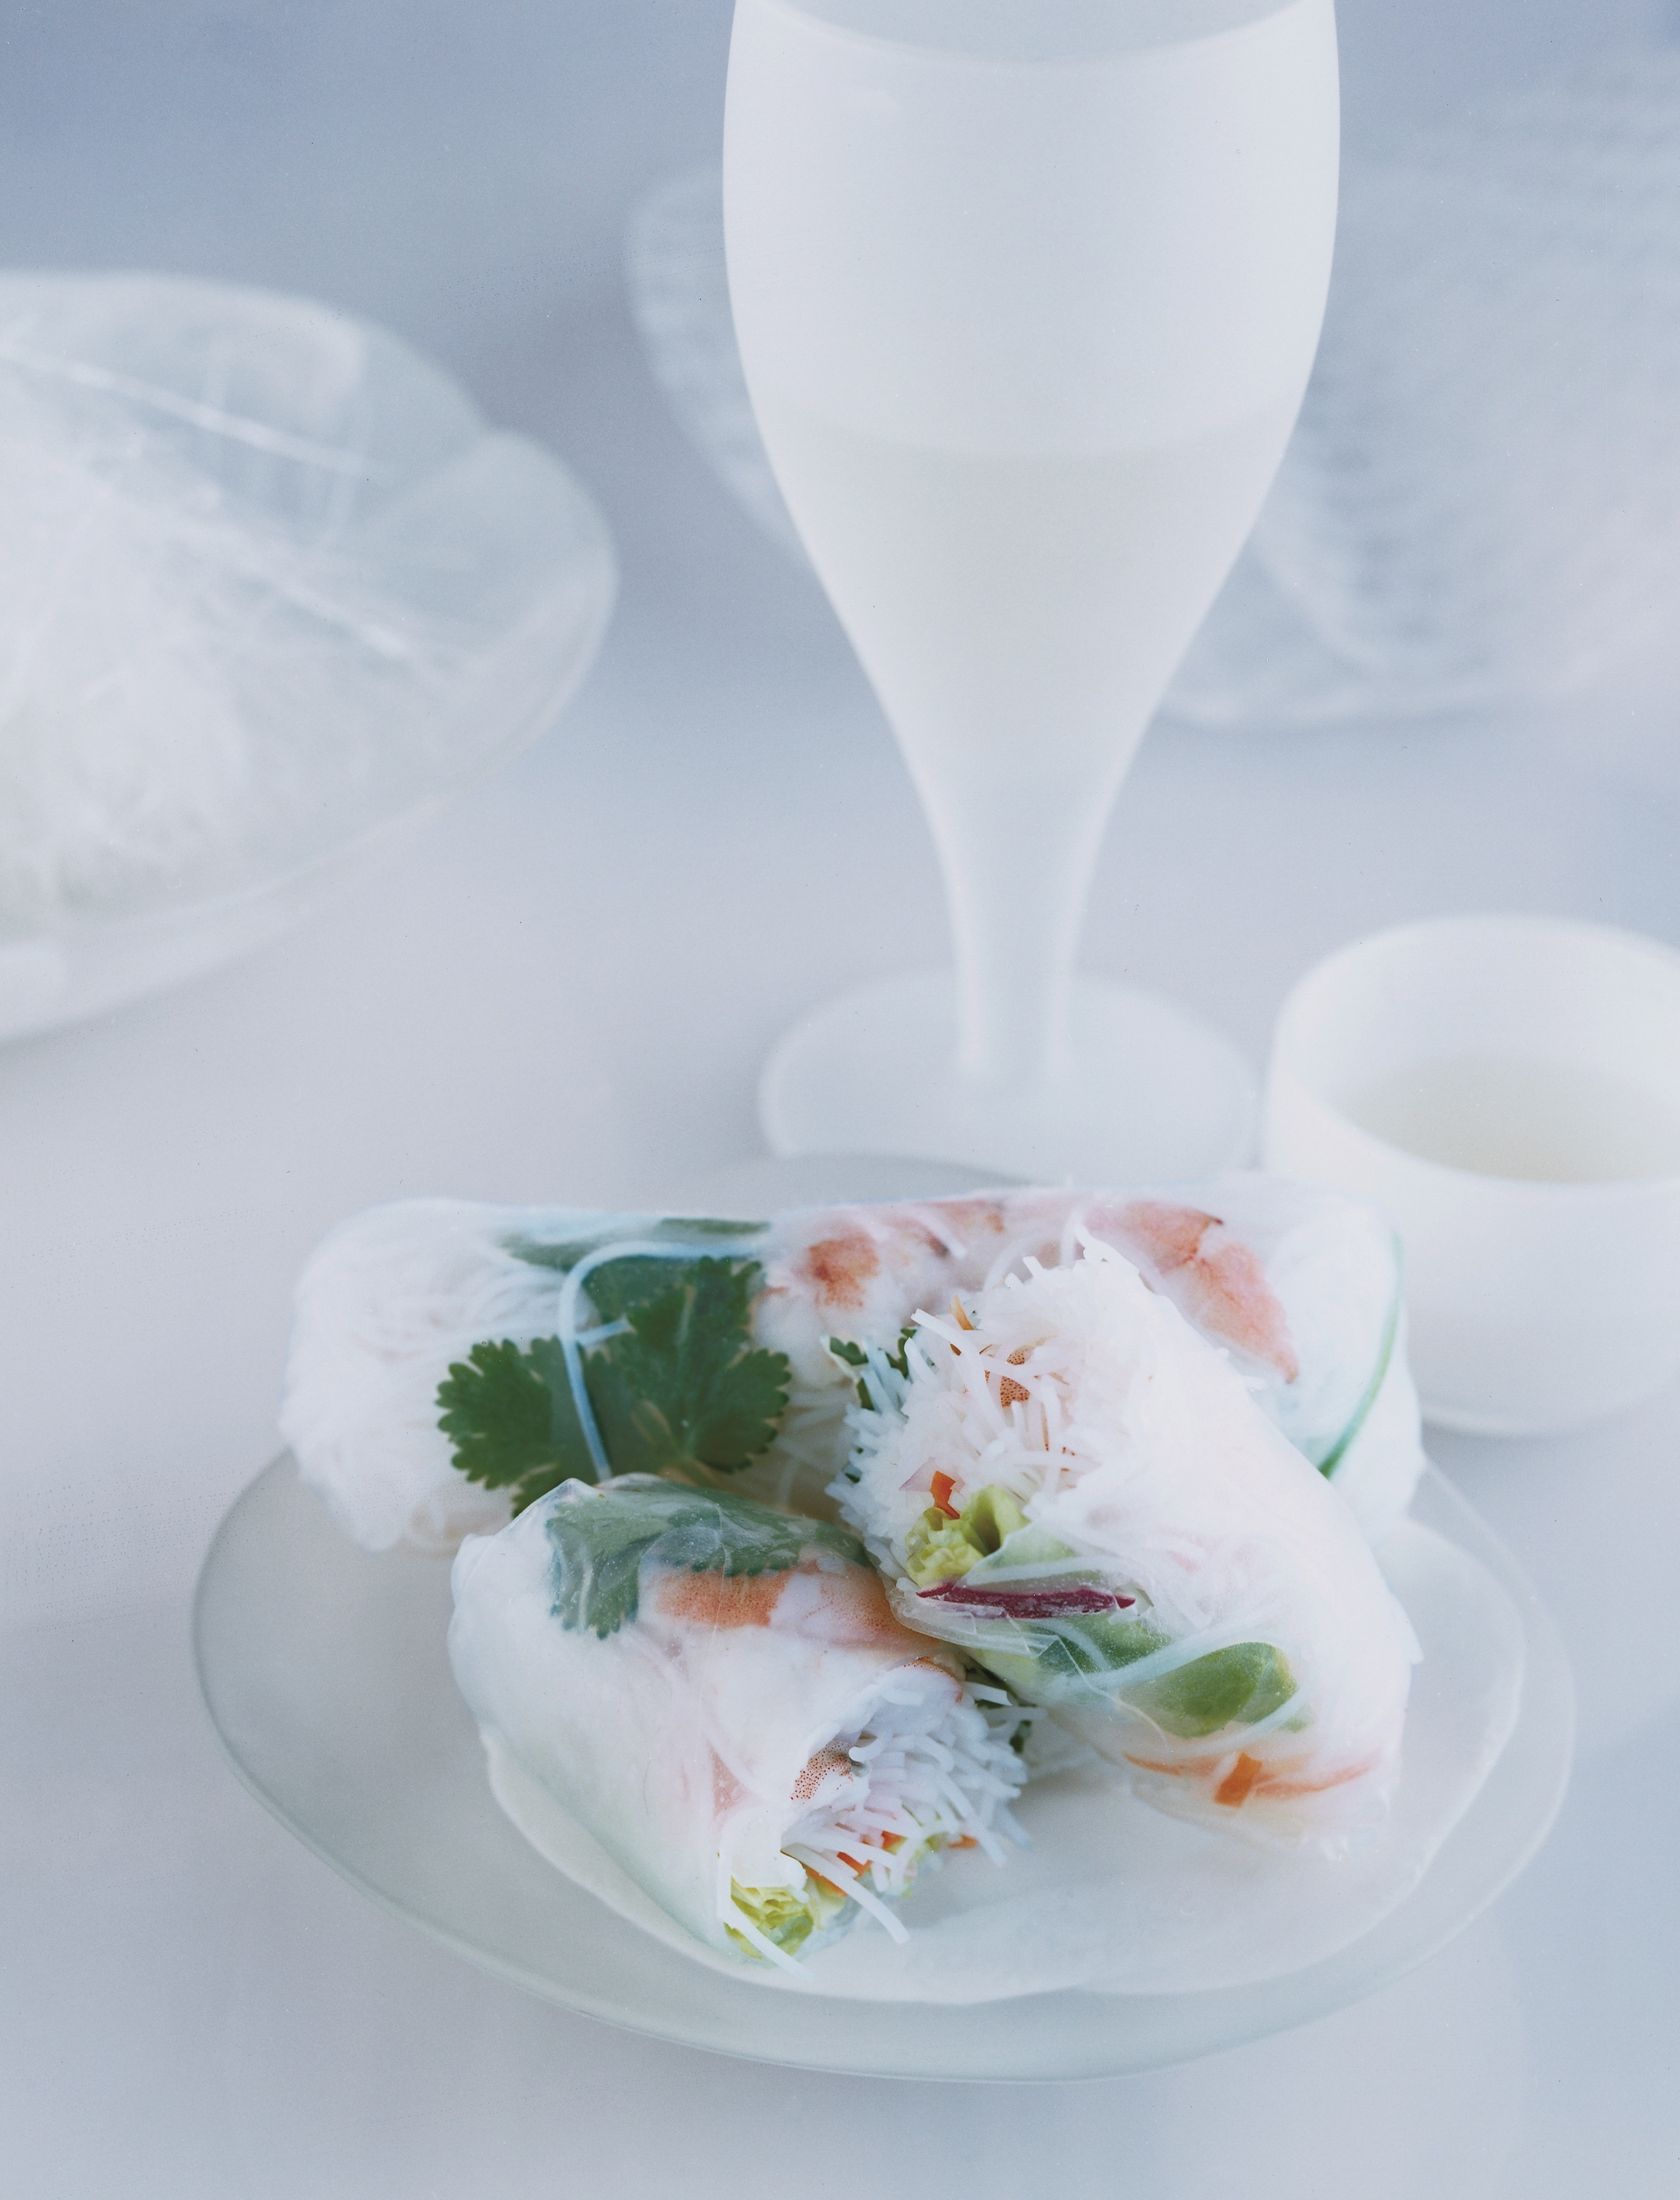 Shrimp and Vegetable Summer Rolls picture